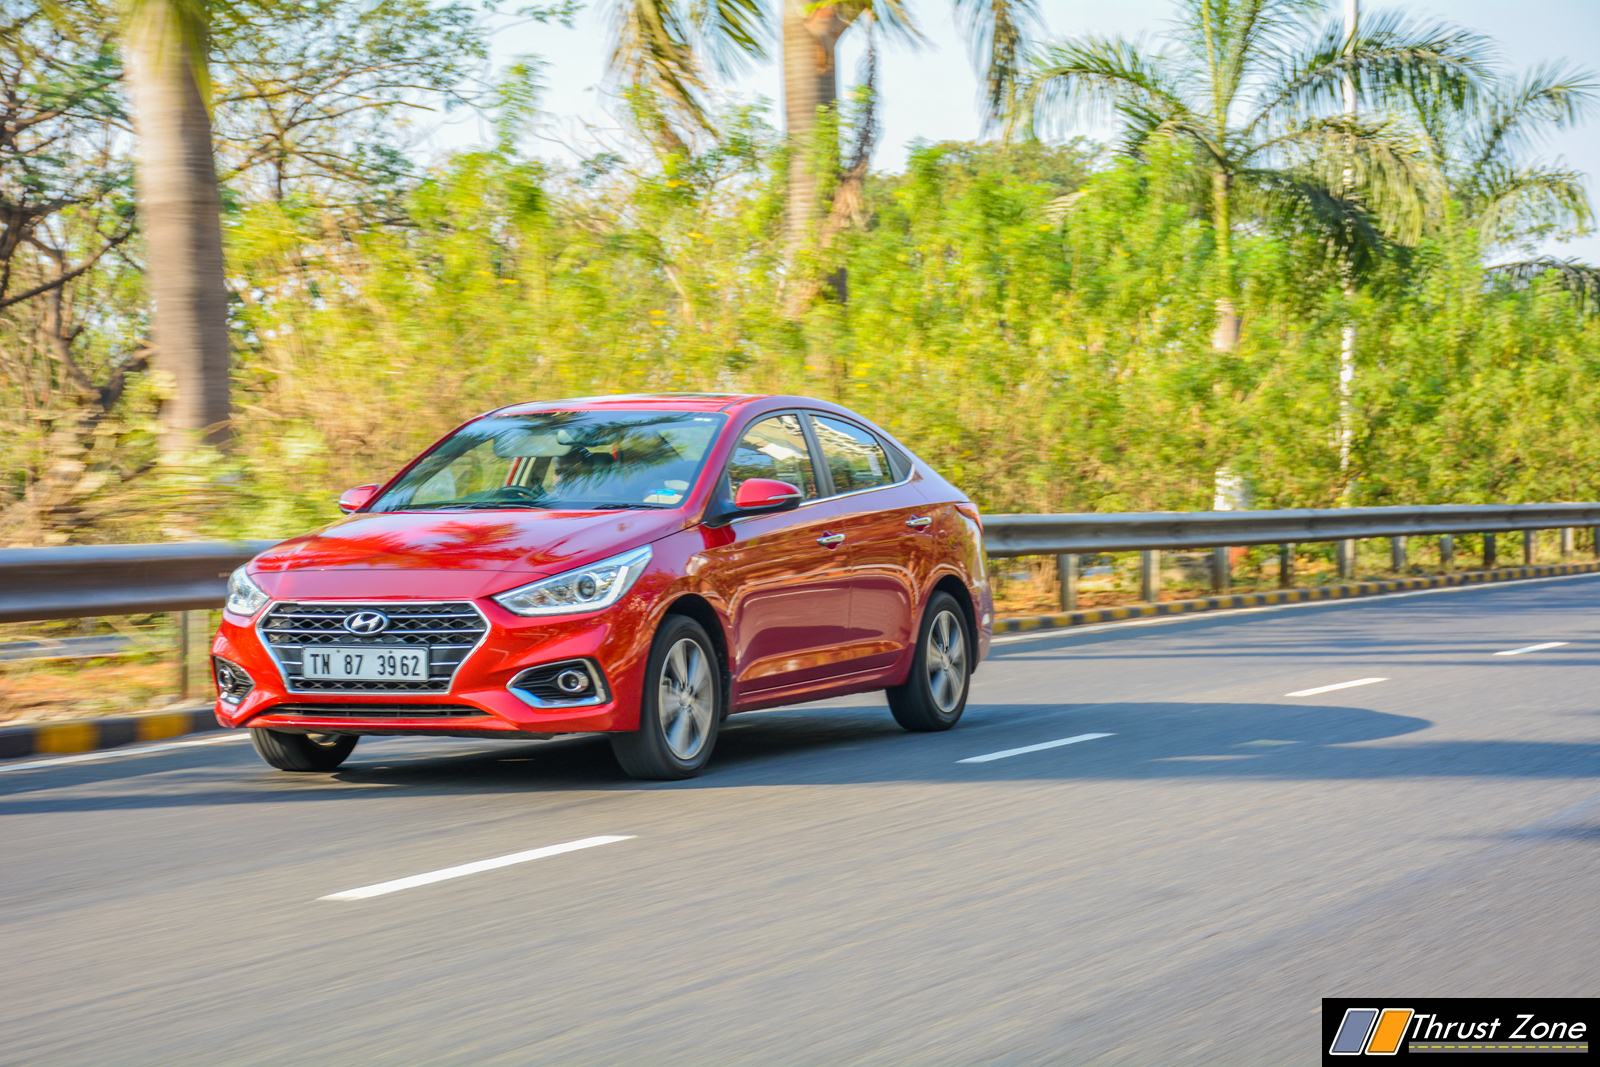 Hyundai Verna Engine and Gearbox Problems Come to Light For